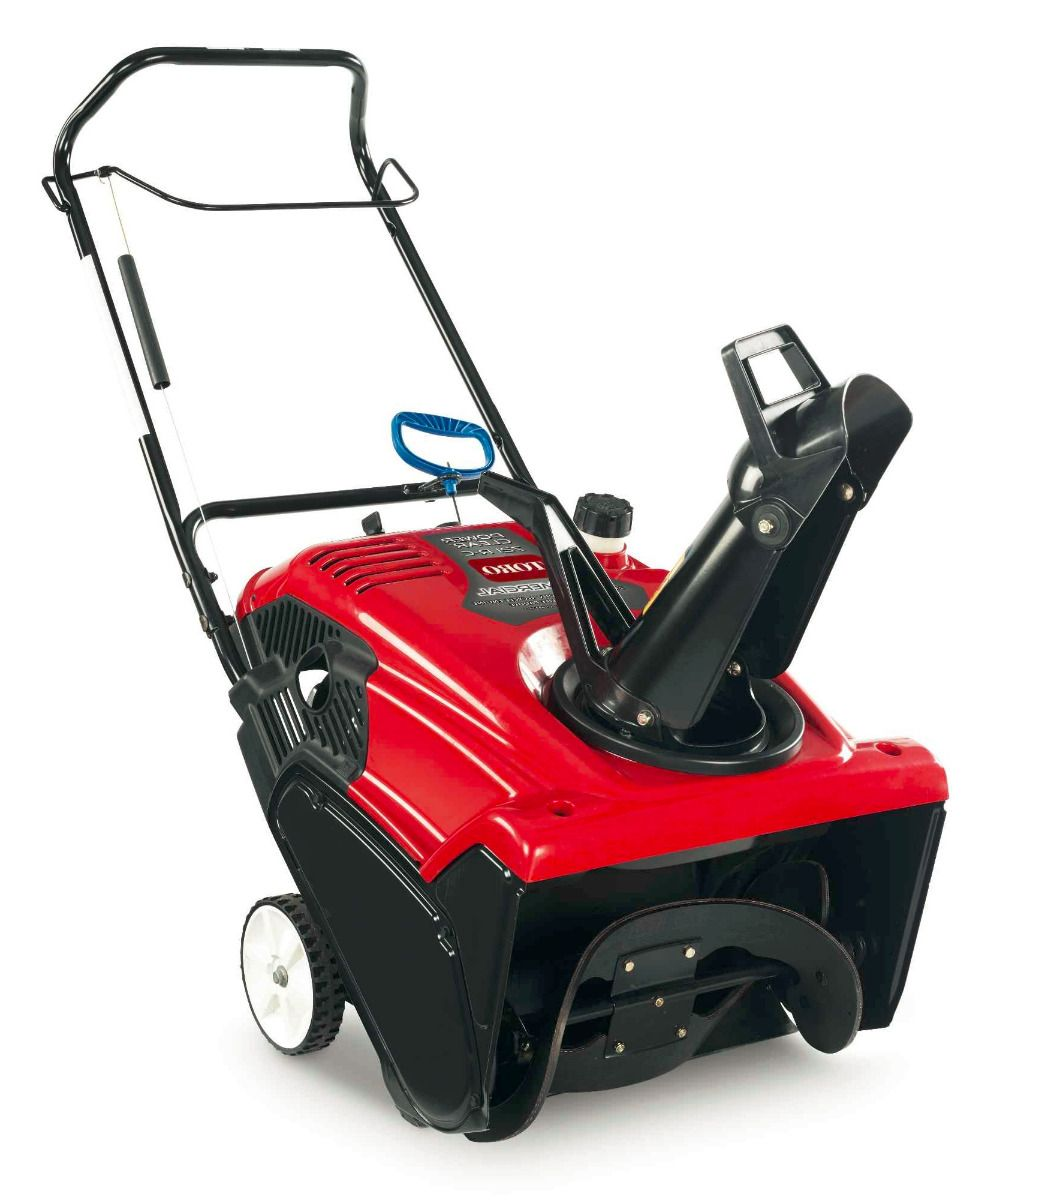 Toro 38751 Power Clear 721 R-C Single Stage Recoil Start Snowthrower